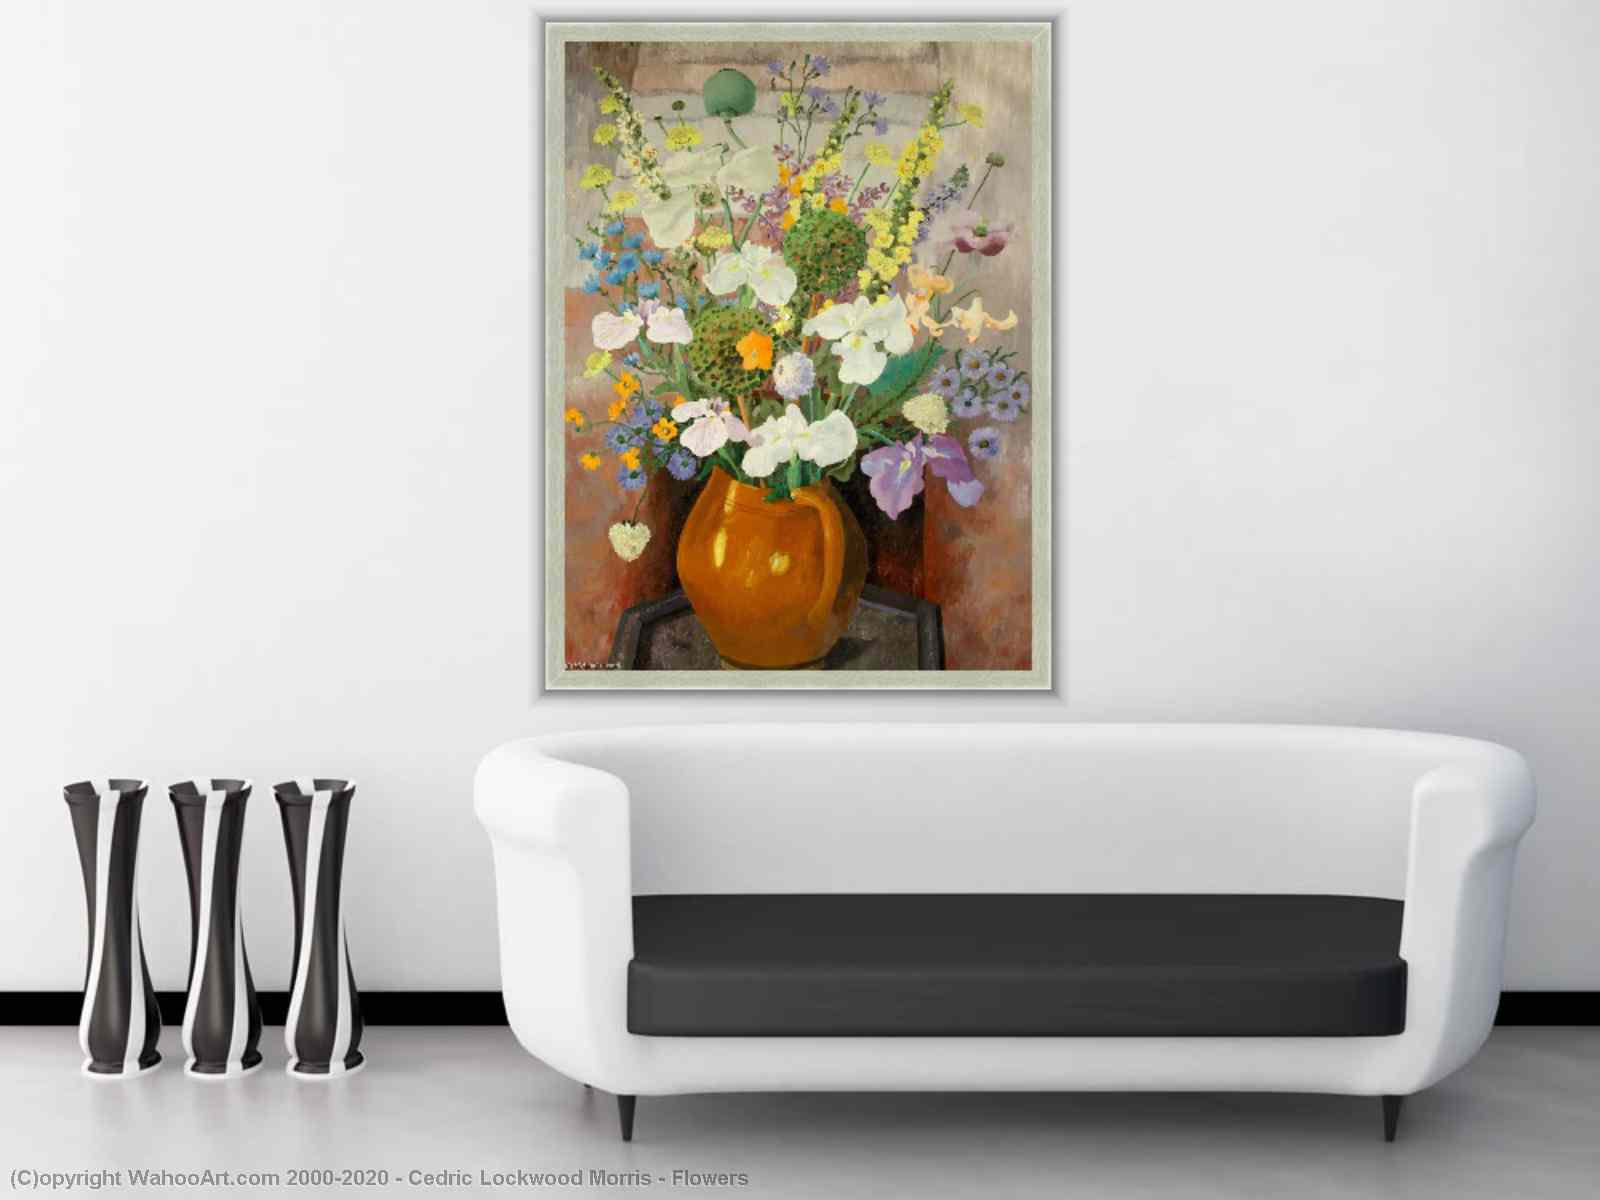 Flowers by Cedric Lockwood Morris | Oil Painting | Most-Famous